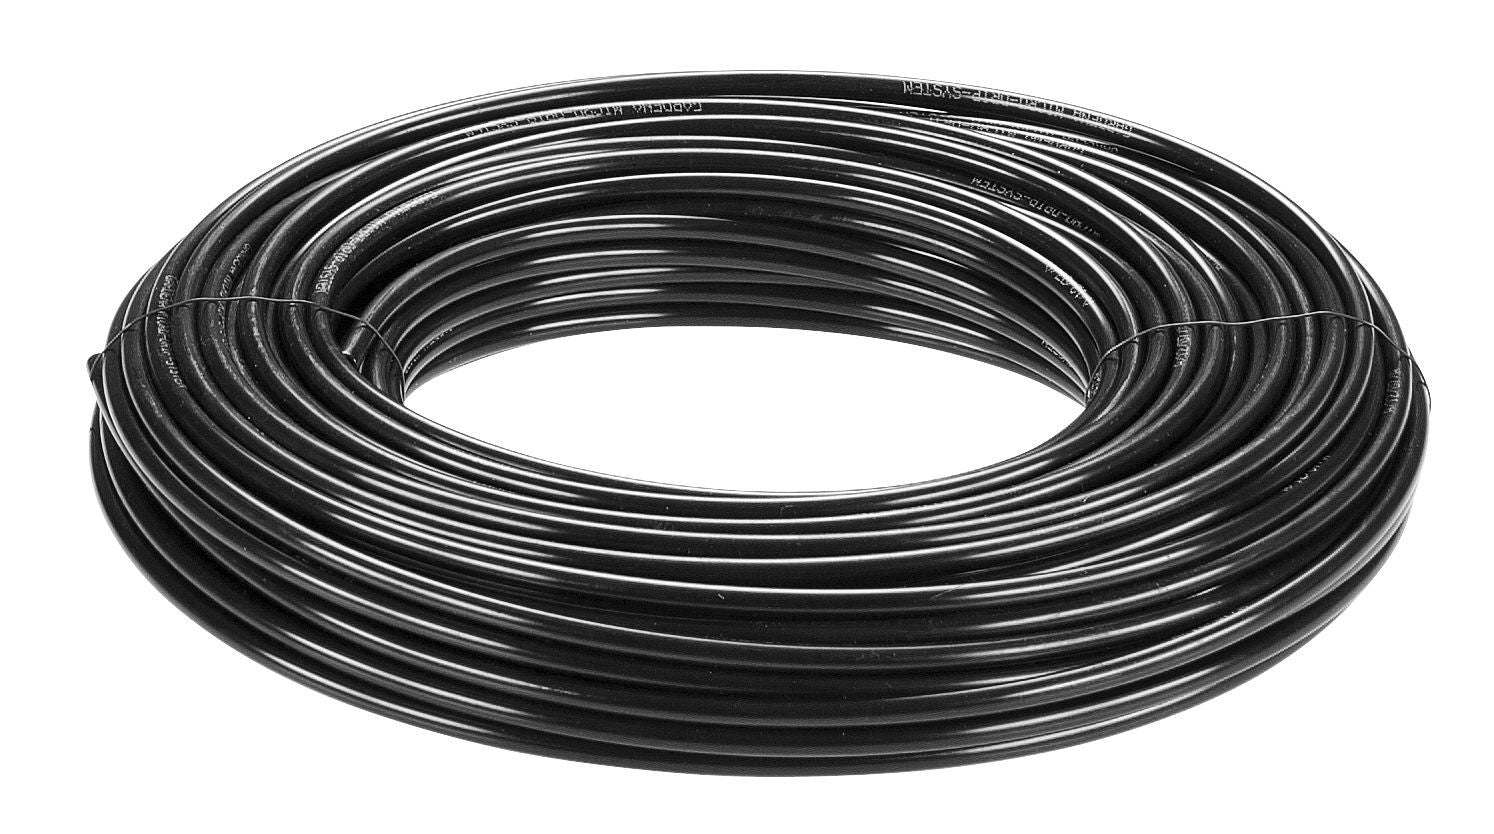 "Gardena Supply Pipe 4.6Mm (3/16"") 50M - Mincost"